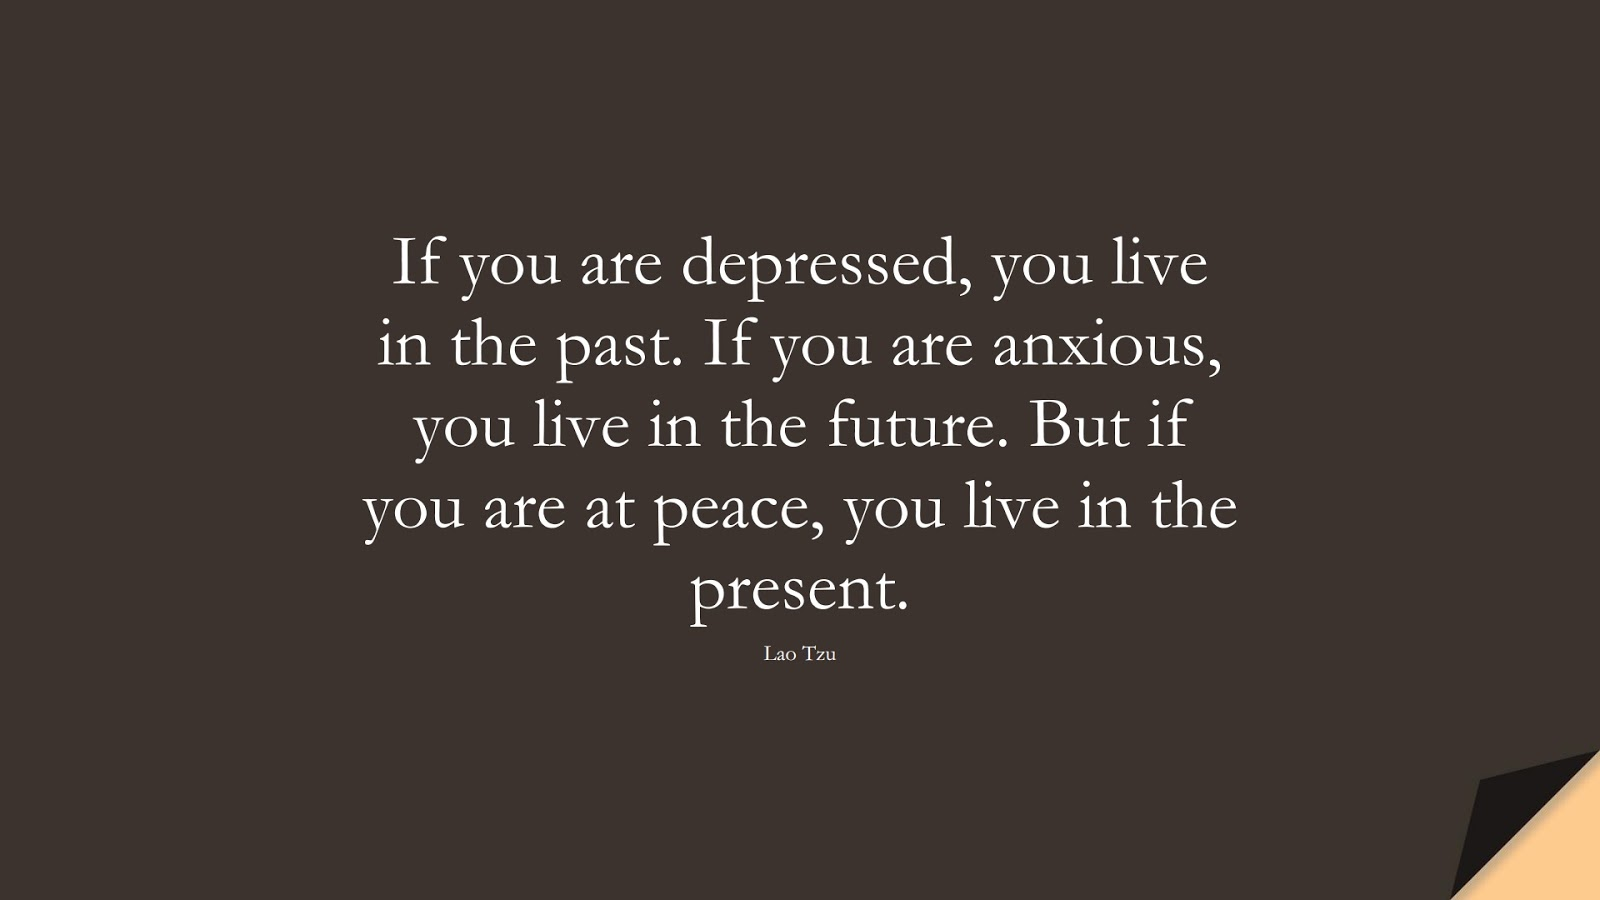 If you are depressed, you live in the past. If you are anxious, you live in the future. But if you are at peace, you live in the present. (Lao Tzu);  #DepressionQuotes